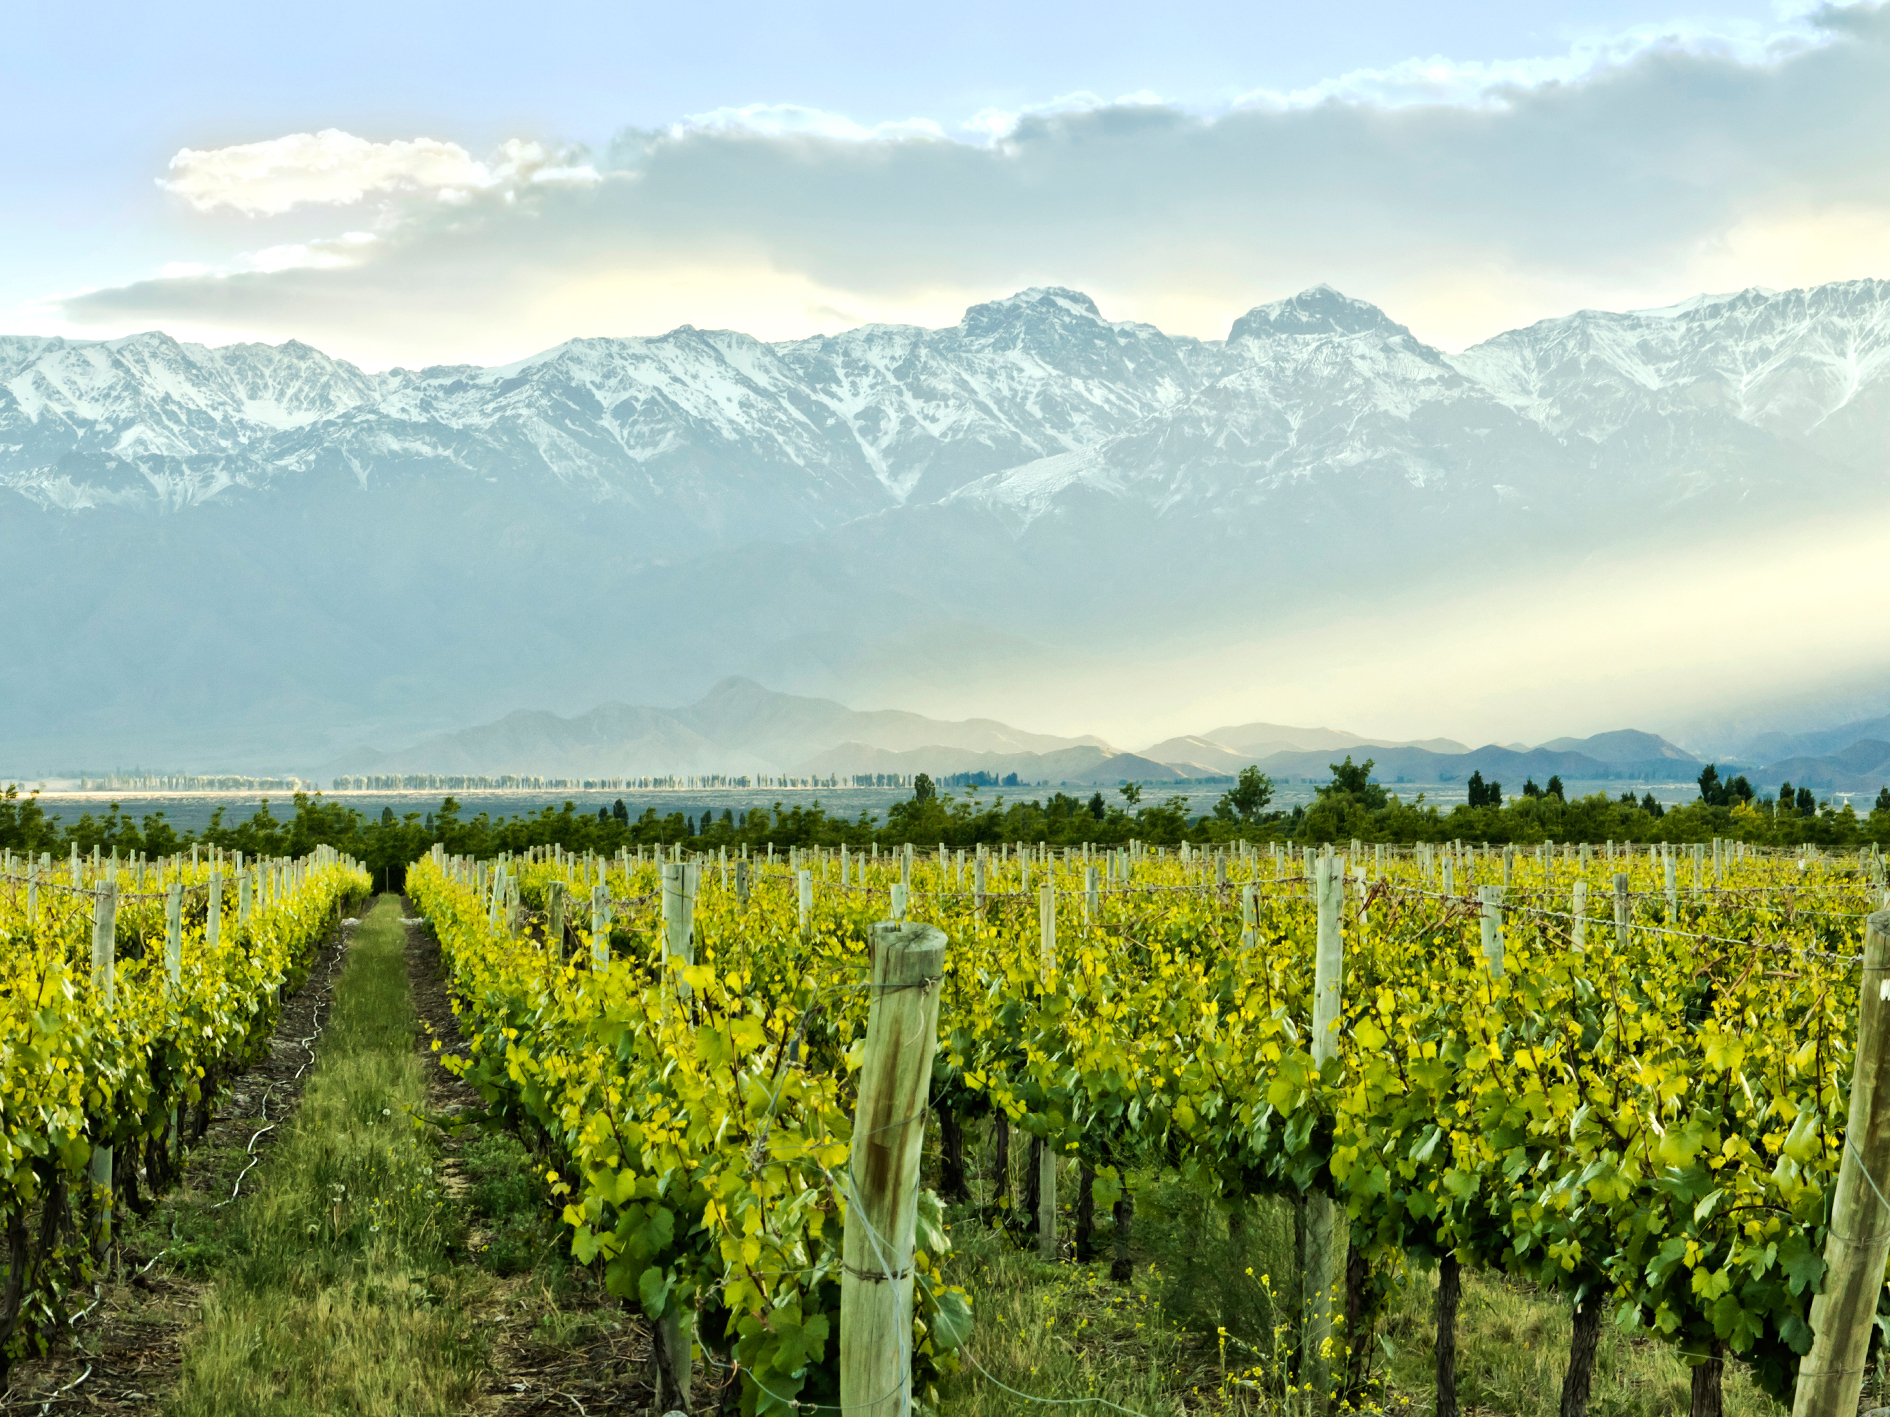 Visit vineyards in Mendoza and sample the delicious wines on offer